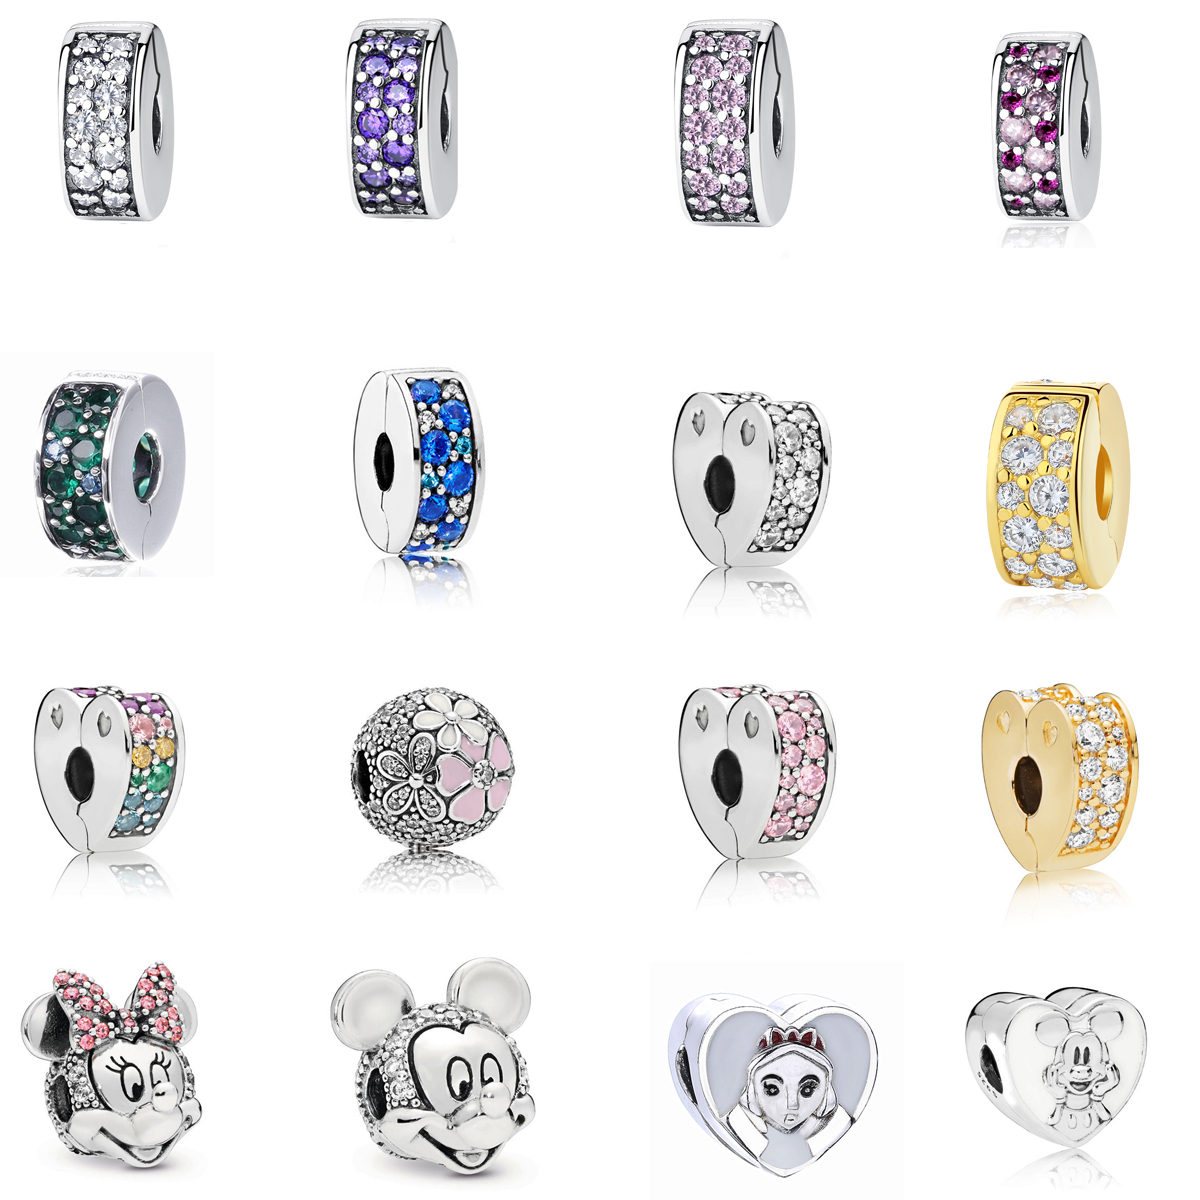 Free Shipping Authentic 925 Sterling Silver Shining Elegance Spacer Clip Charms Fit Original Pandora Bracelet Women Jewelry Bead(China)